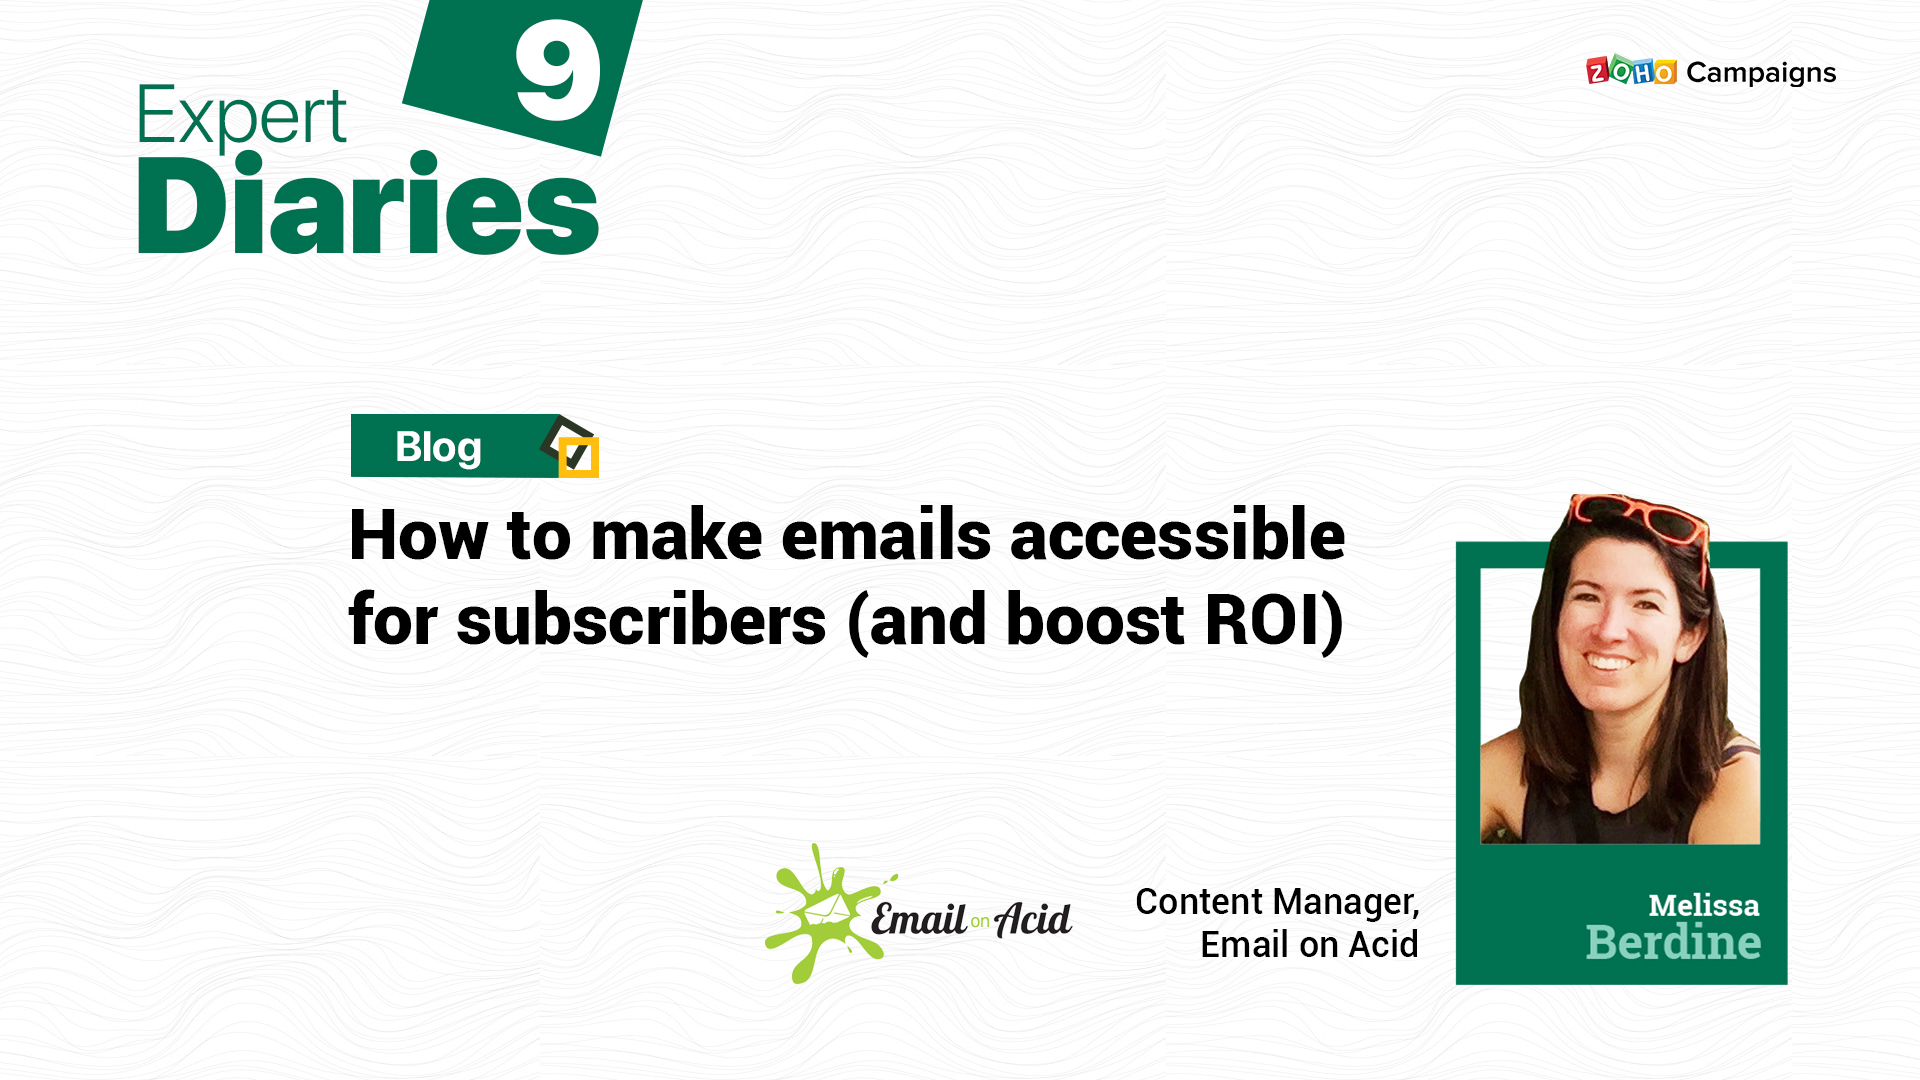 How to make emails accessible for subscribers (and boost ROI)